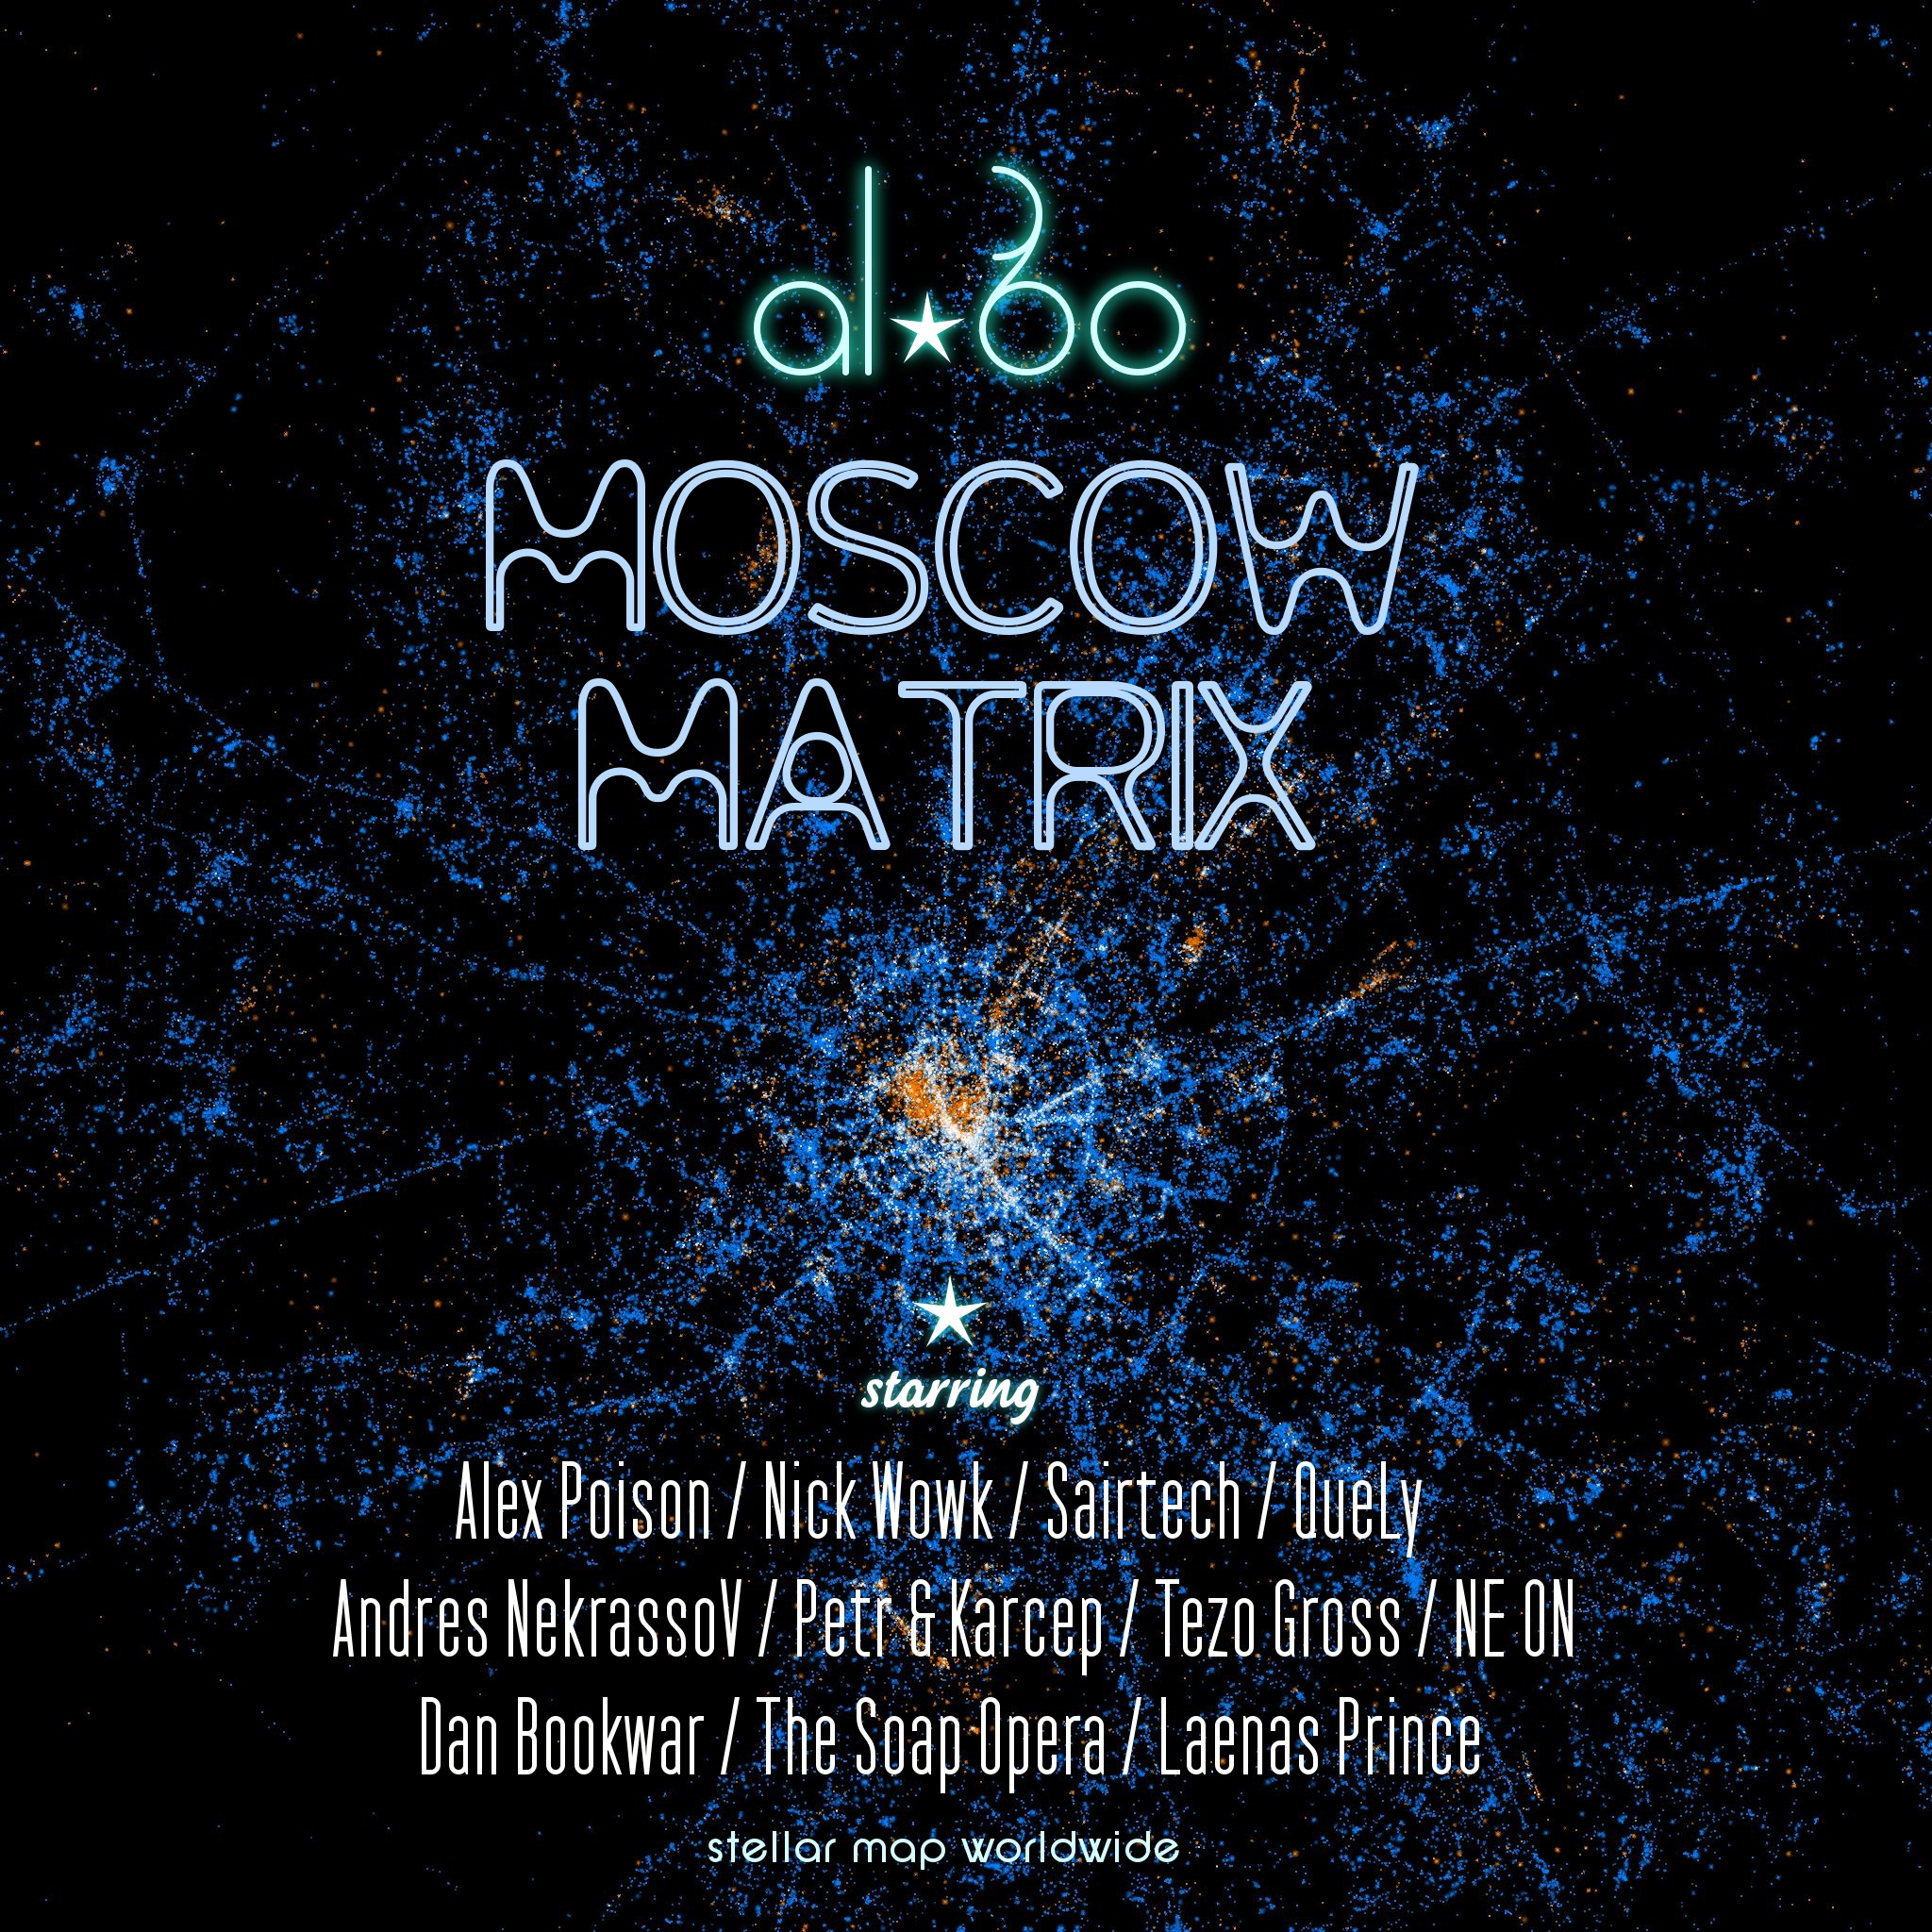 WorldOfBrights : al l bo - Moscow Matrix